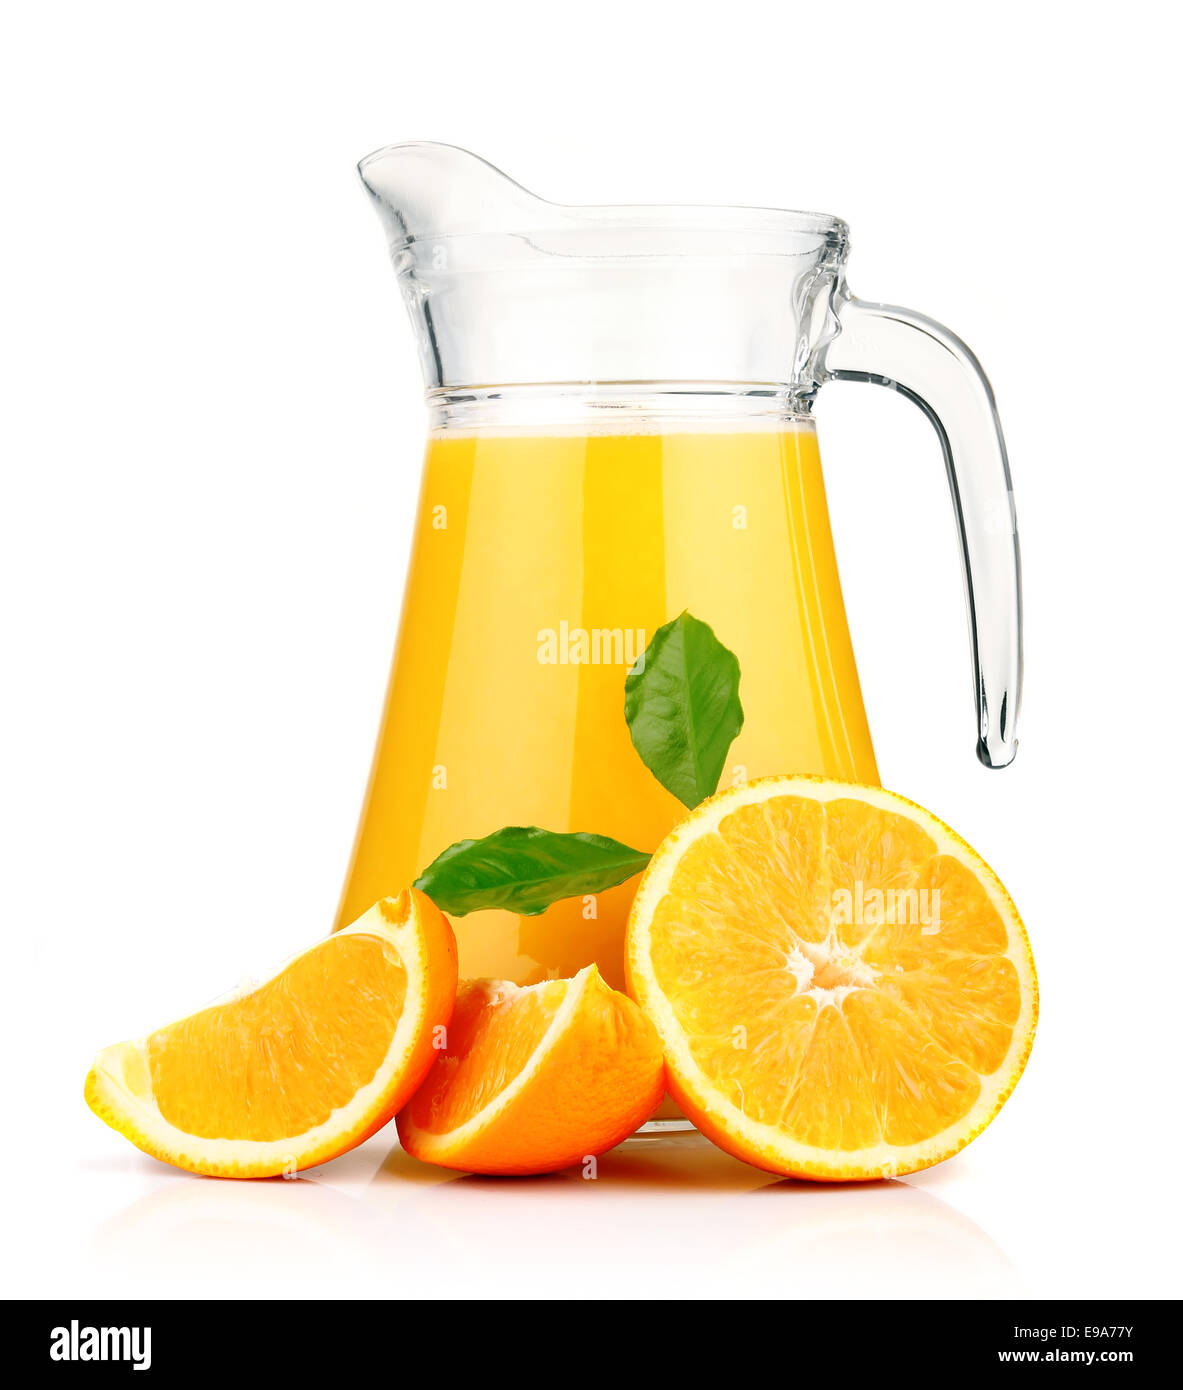 Orange juice in pitcher and oranges. - Stock Image